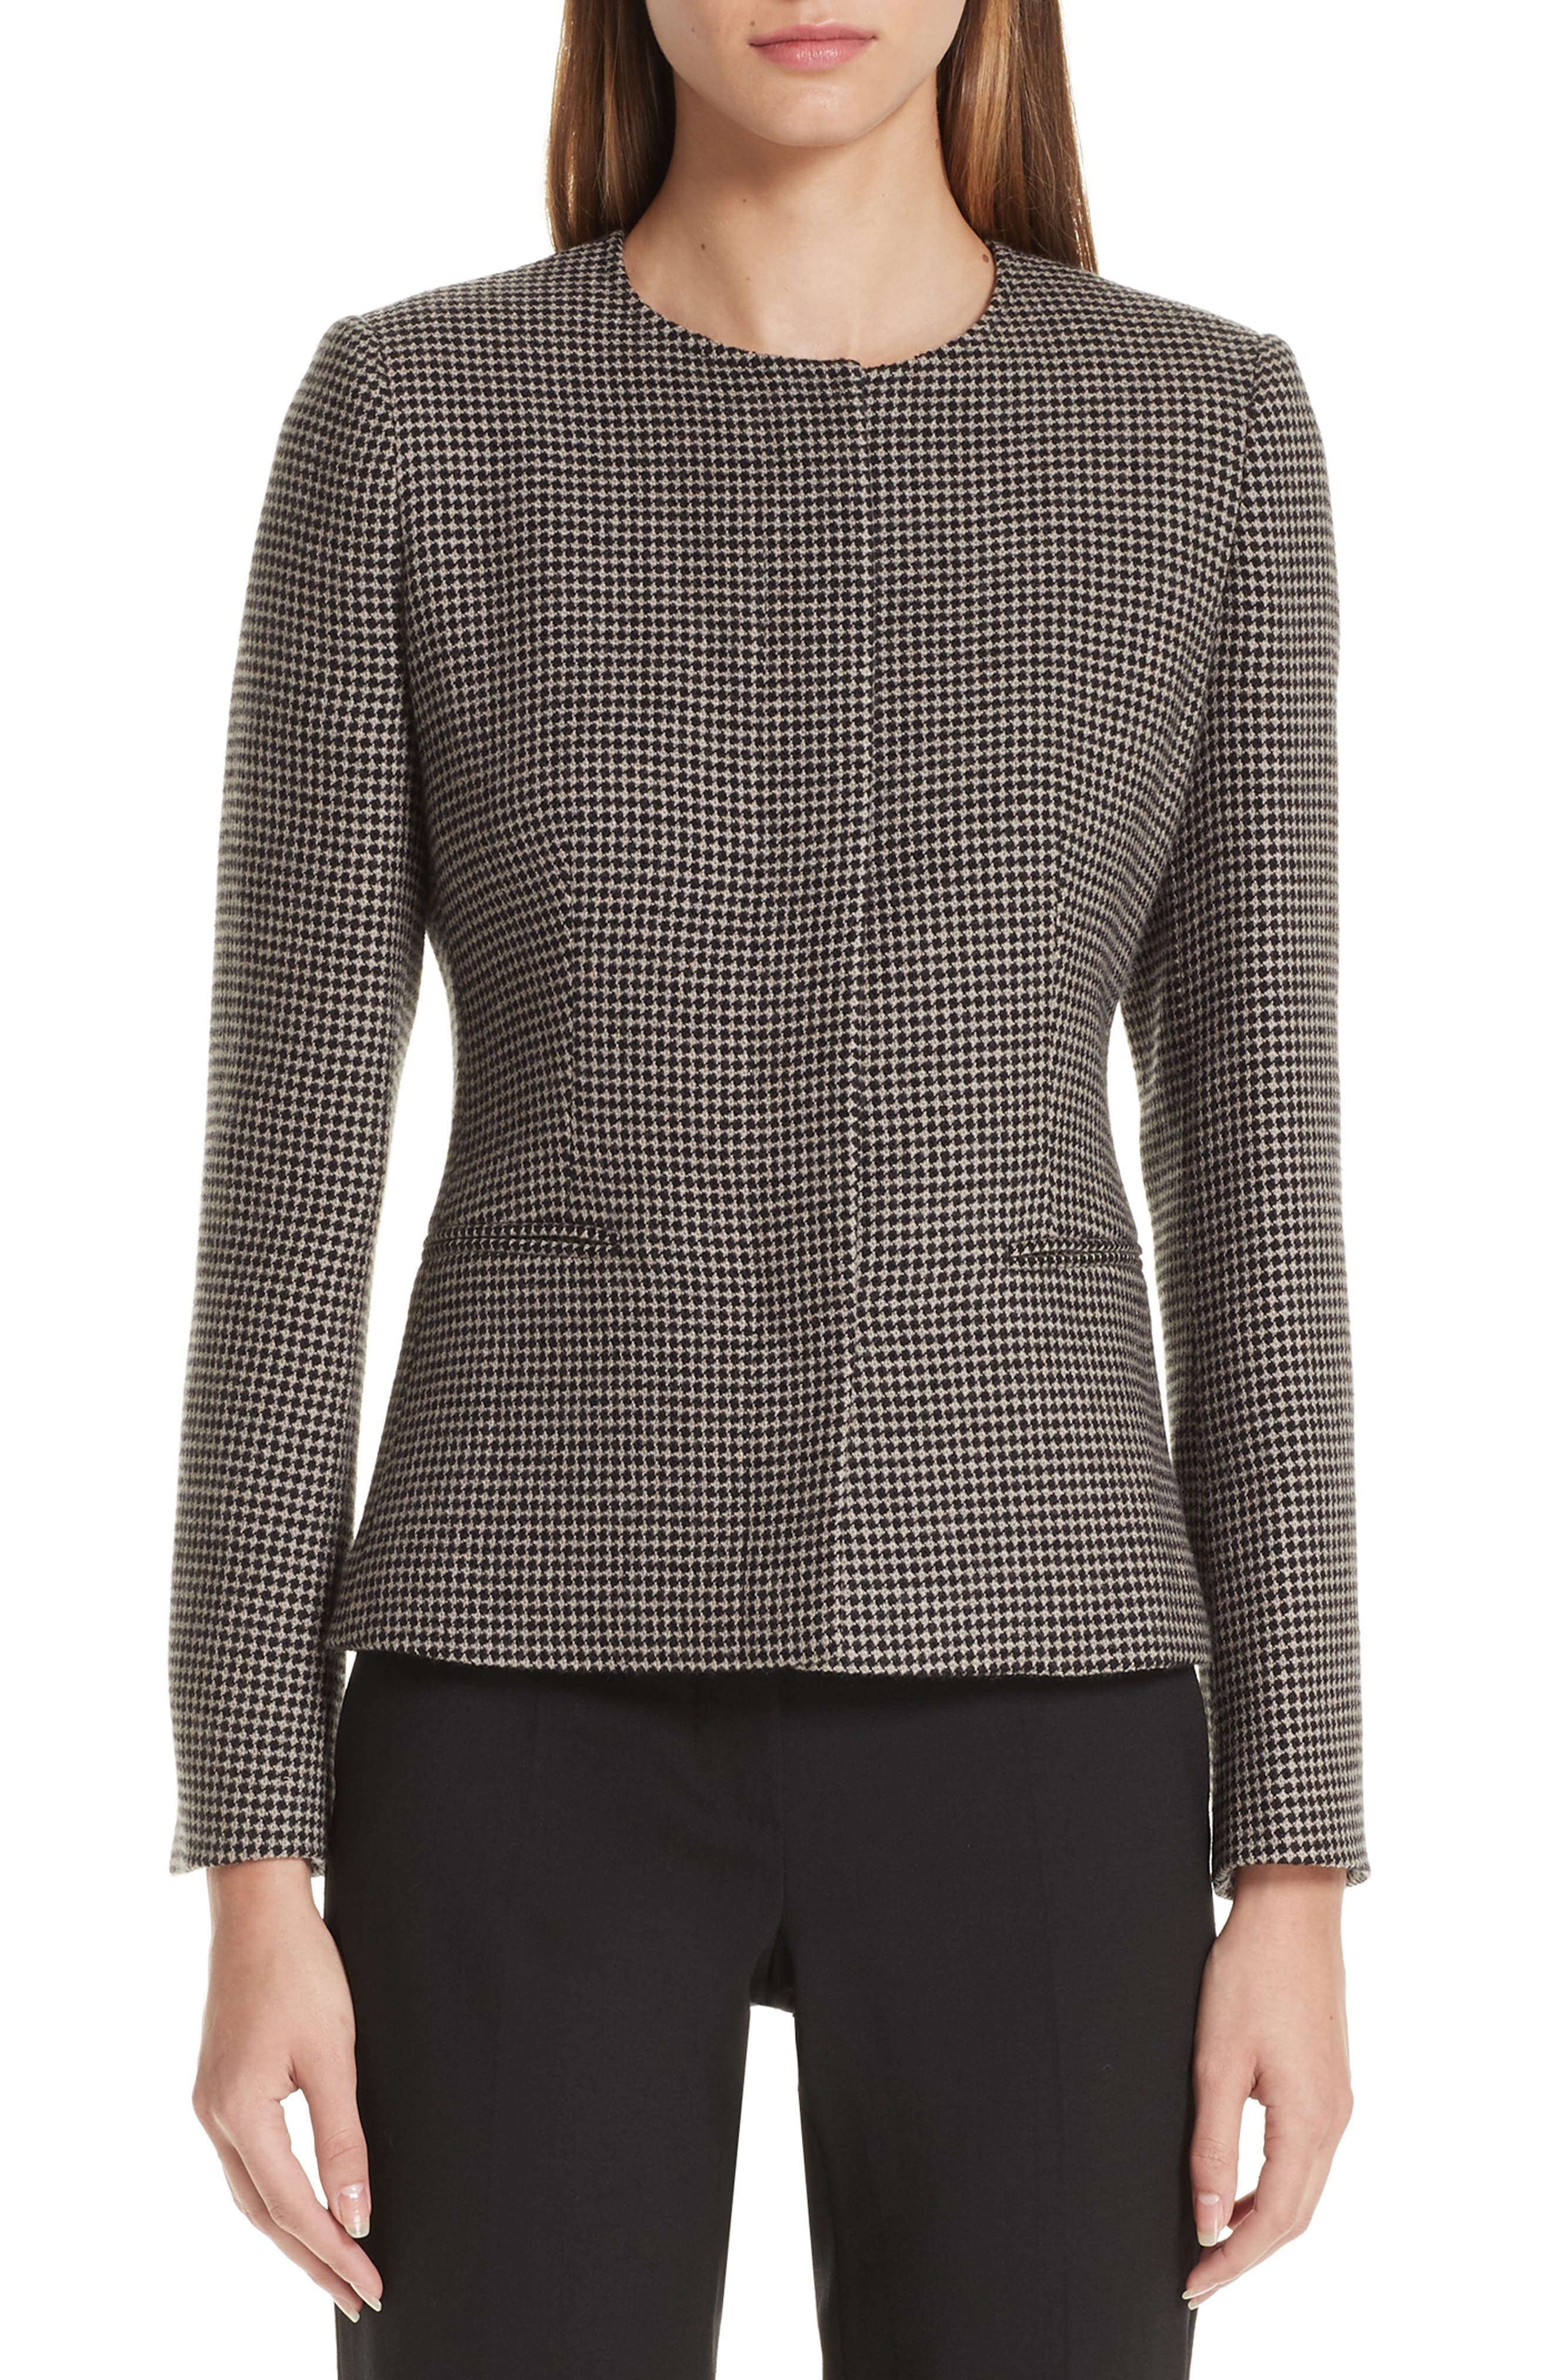 Spigola Wool & Cashmere Jacket,                         Main,                         color, TURTLEDOVE